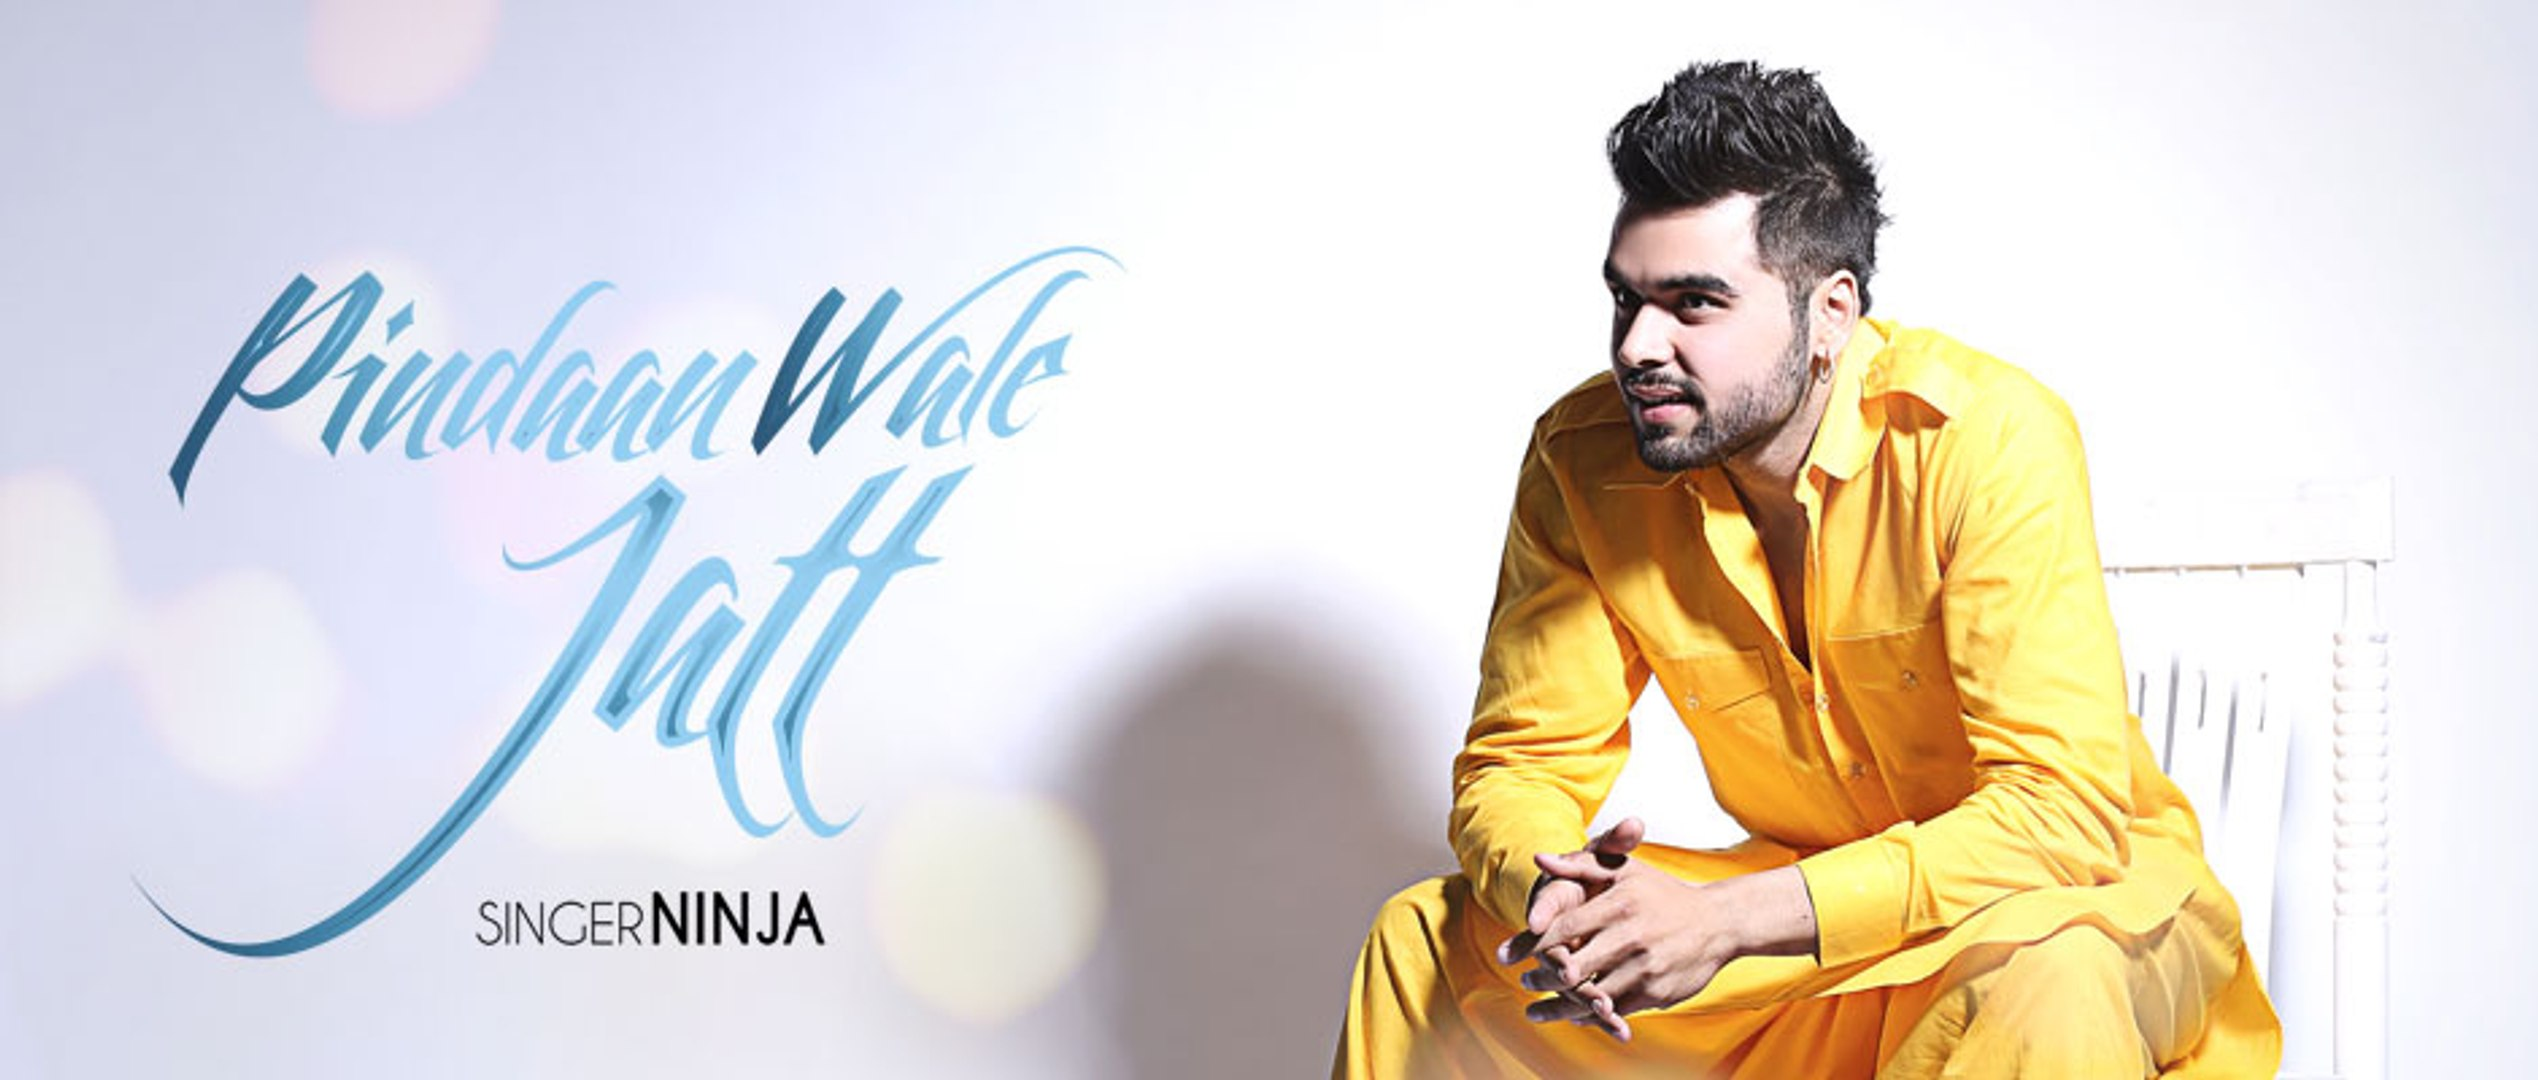 Photo of Pinda Wale Jatt New Song Download in High Quality HD Audio